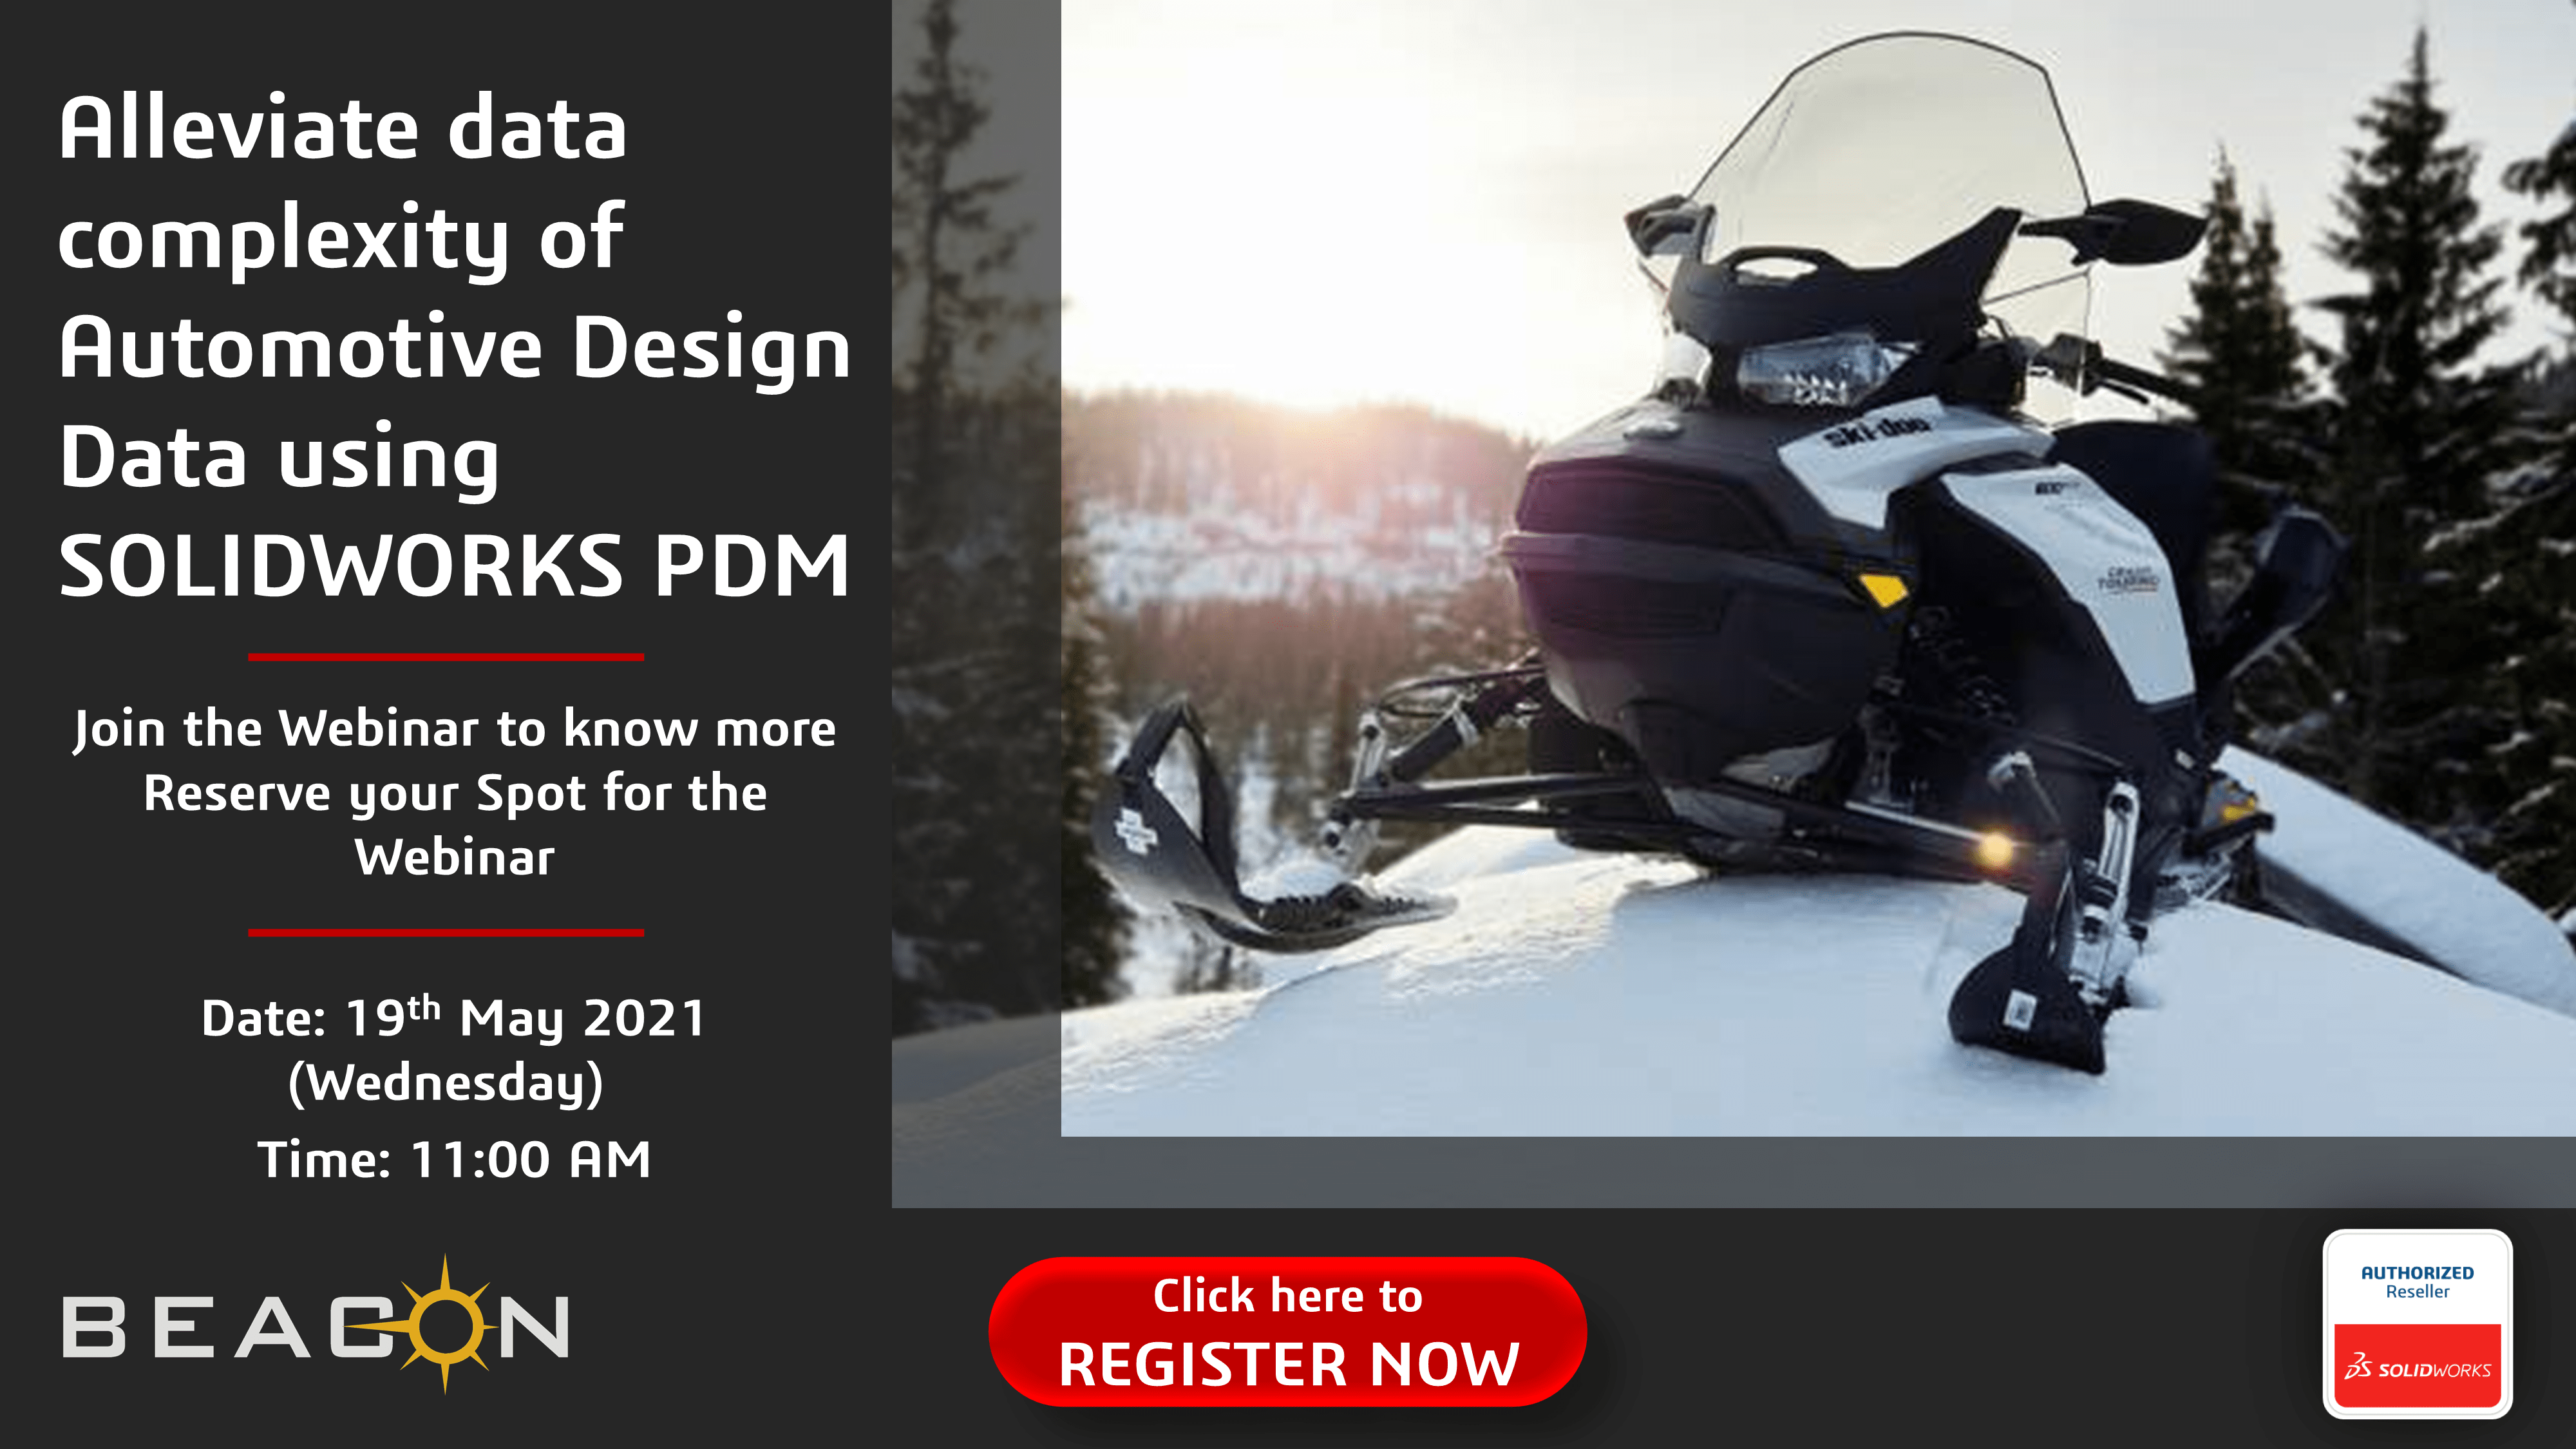 Alleviate data complexity of Automotive Design Data using SOLIDWORKS PDM